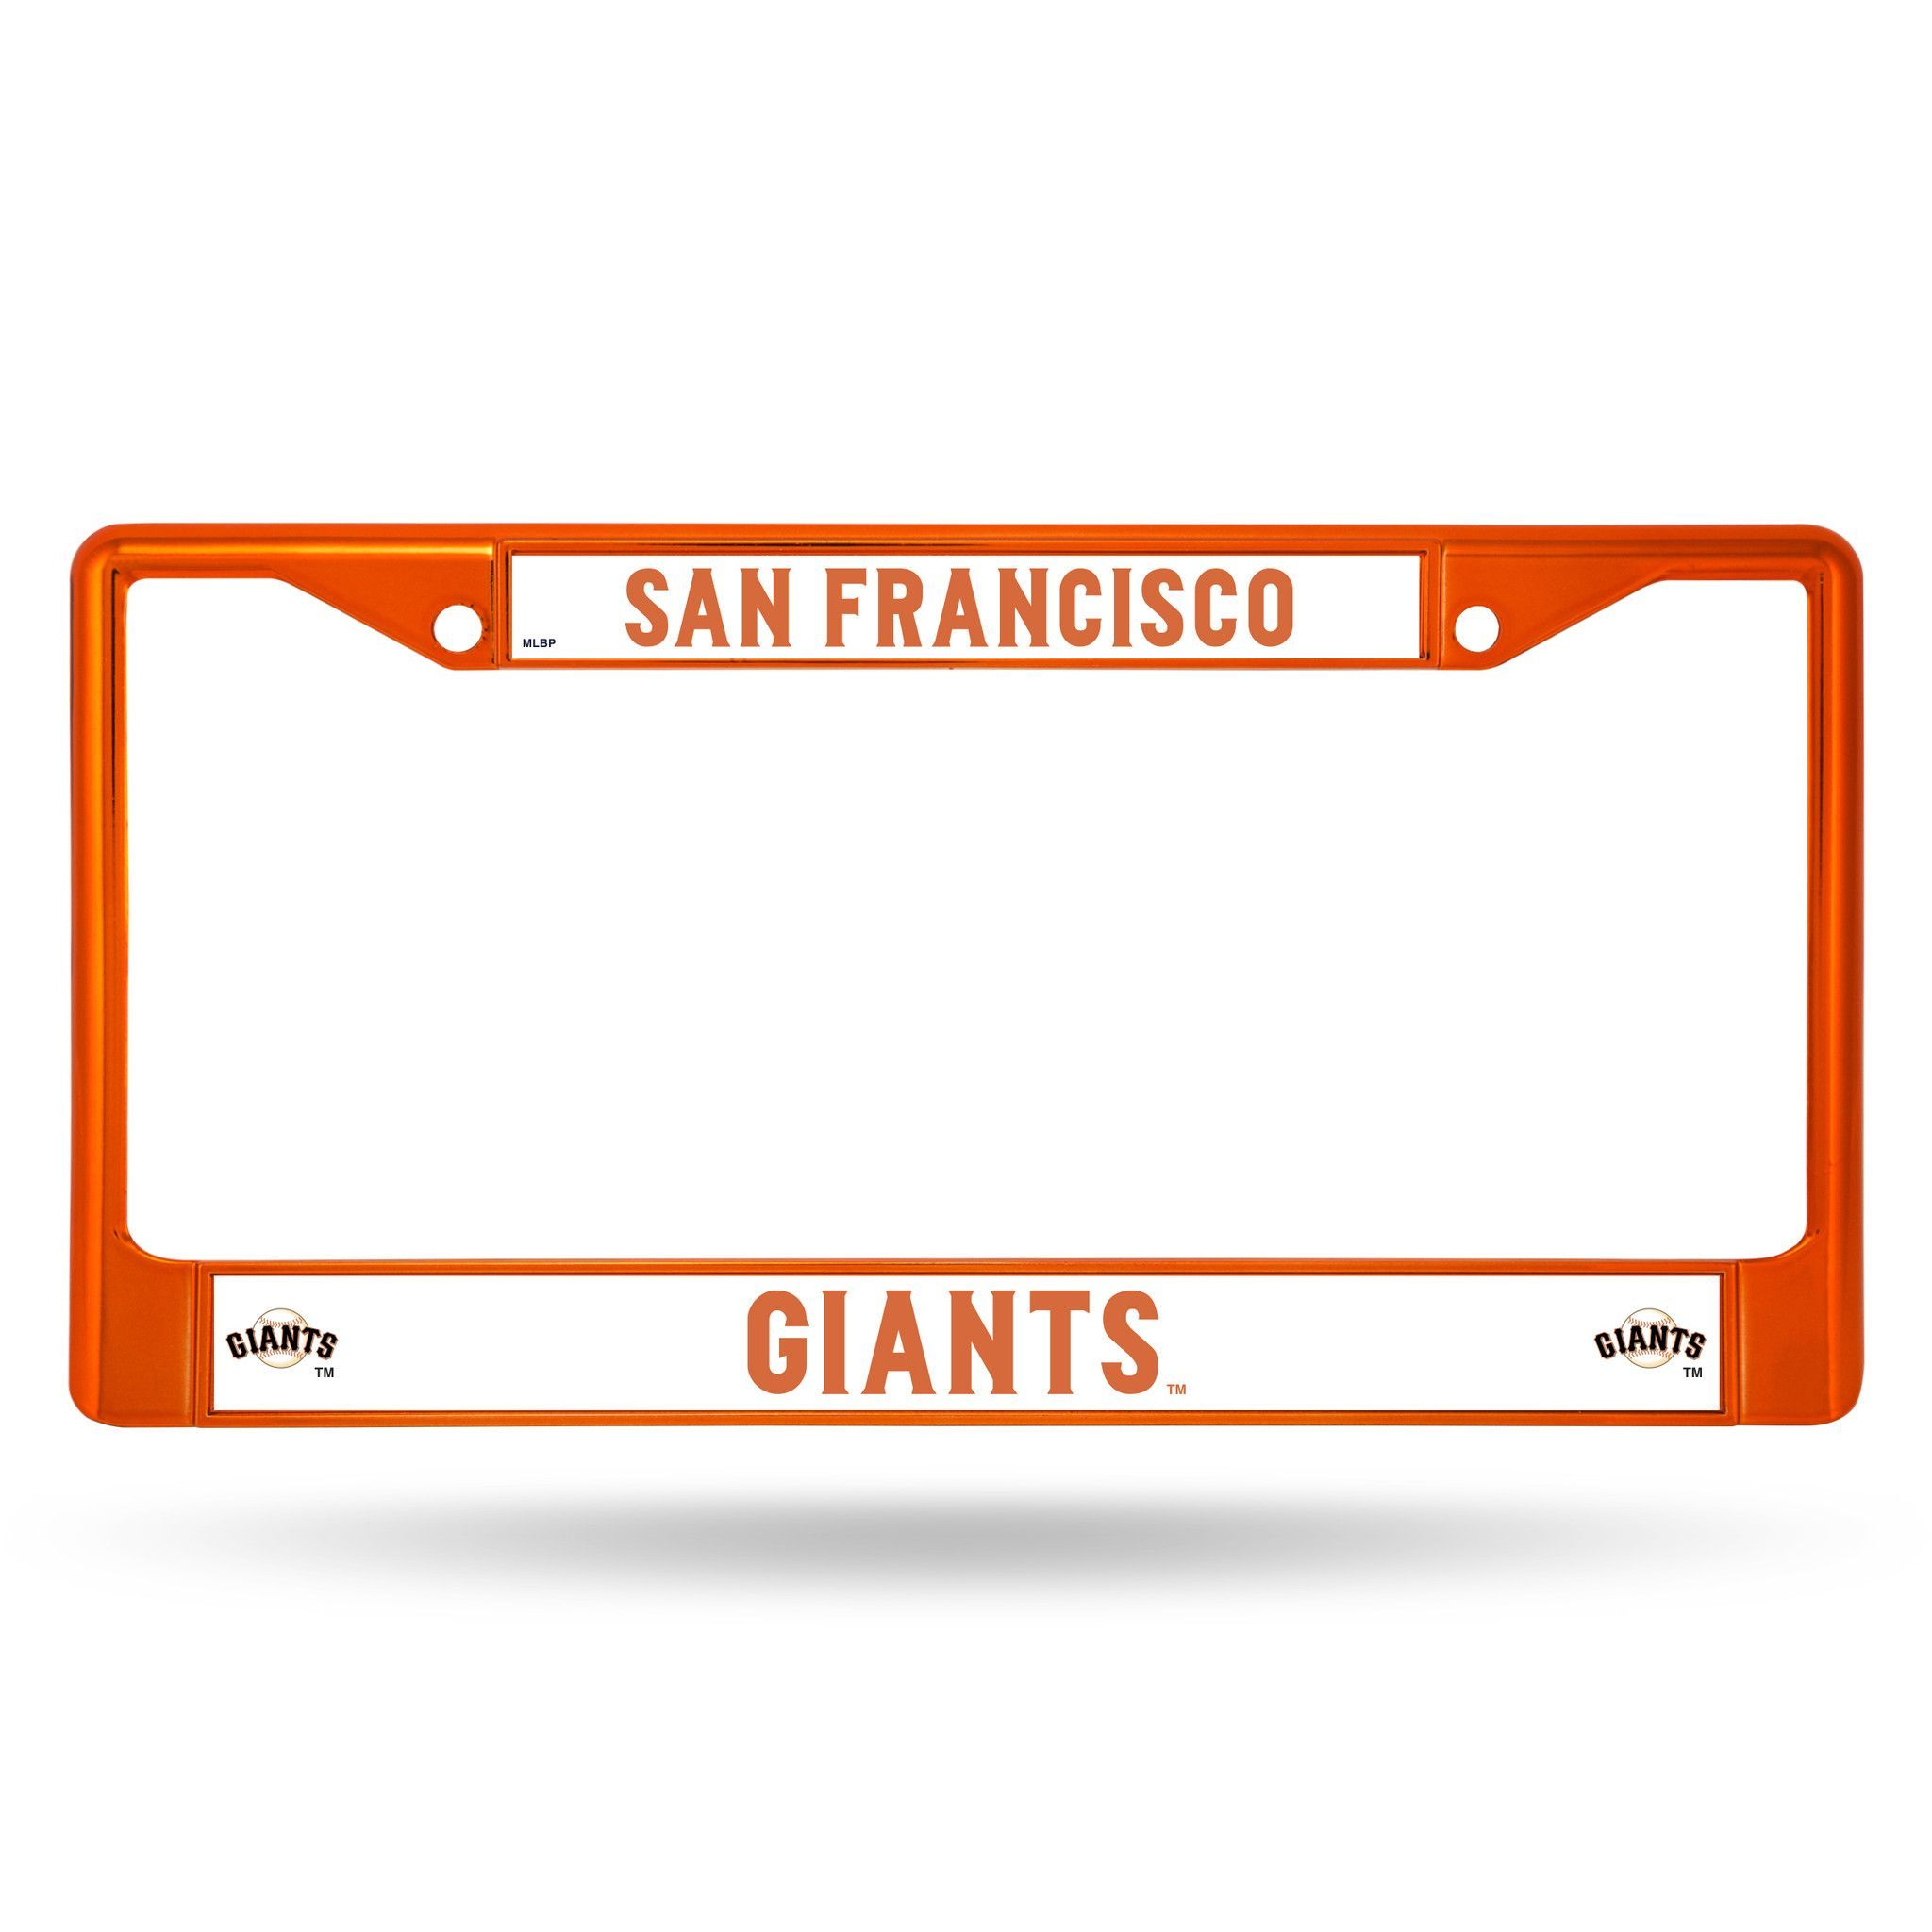 Dorable San Francisco Giants Picture Frame Collection - Ideas de ...